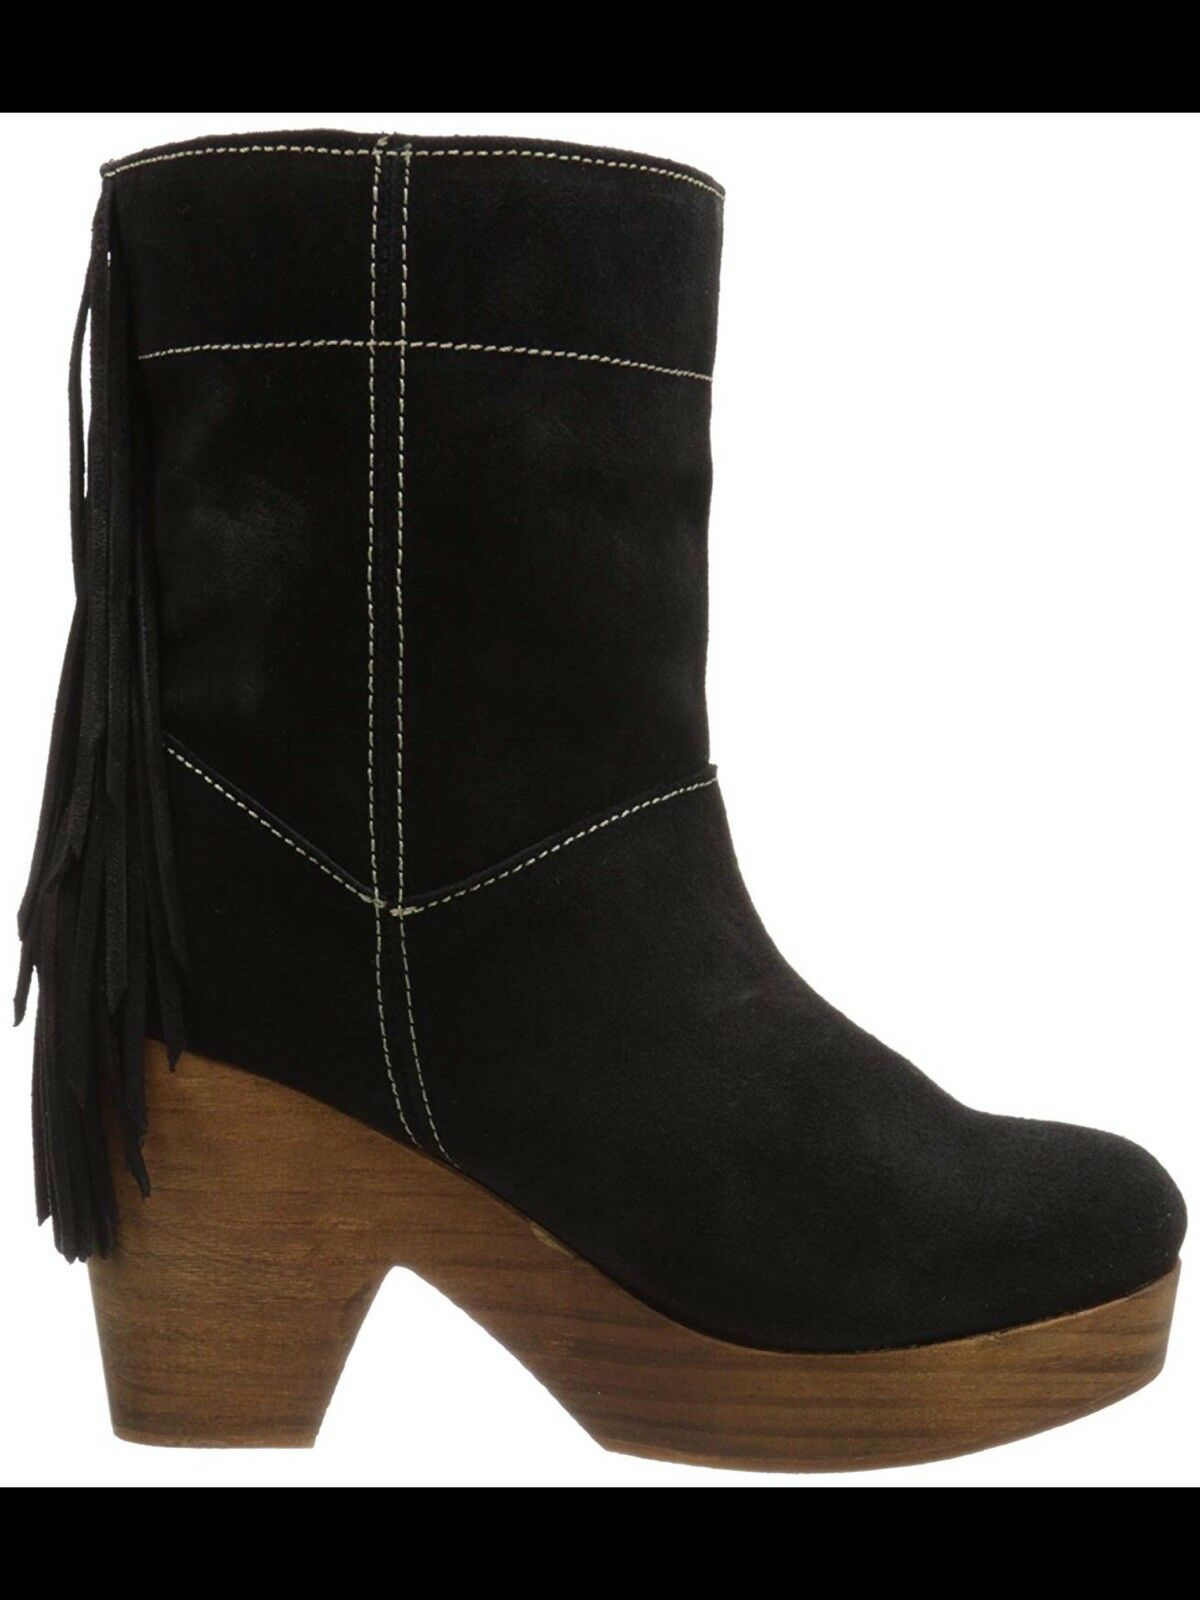 FREEBIRD BY STEVEN  Boot Farah' Fringe Platform Clog Boot  NEW MSRP 350 e3b546